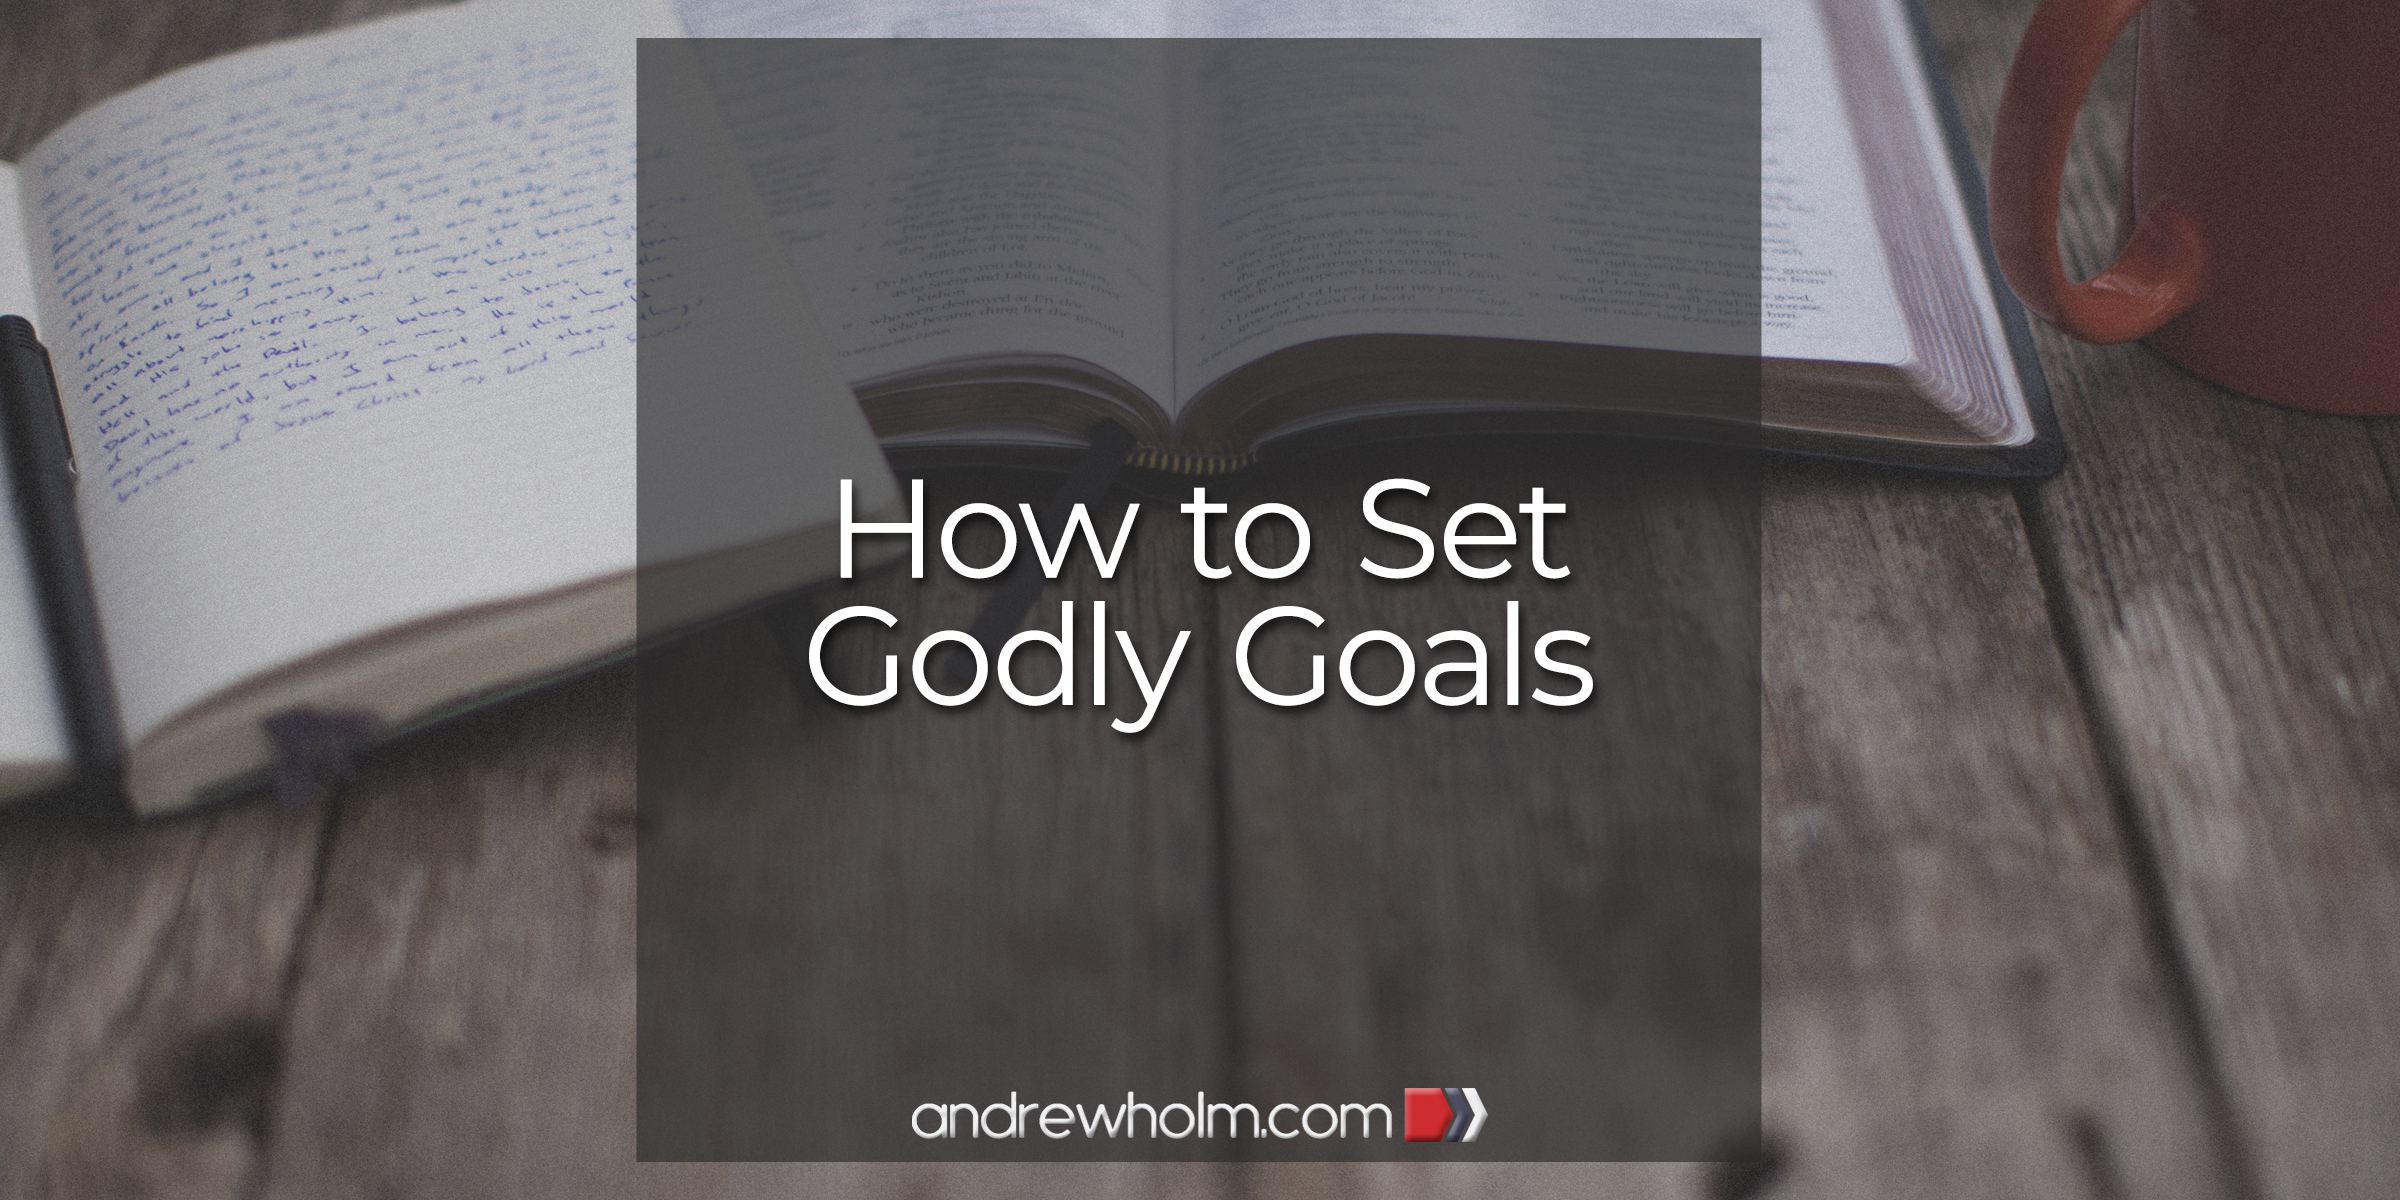 godly goal setting